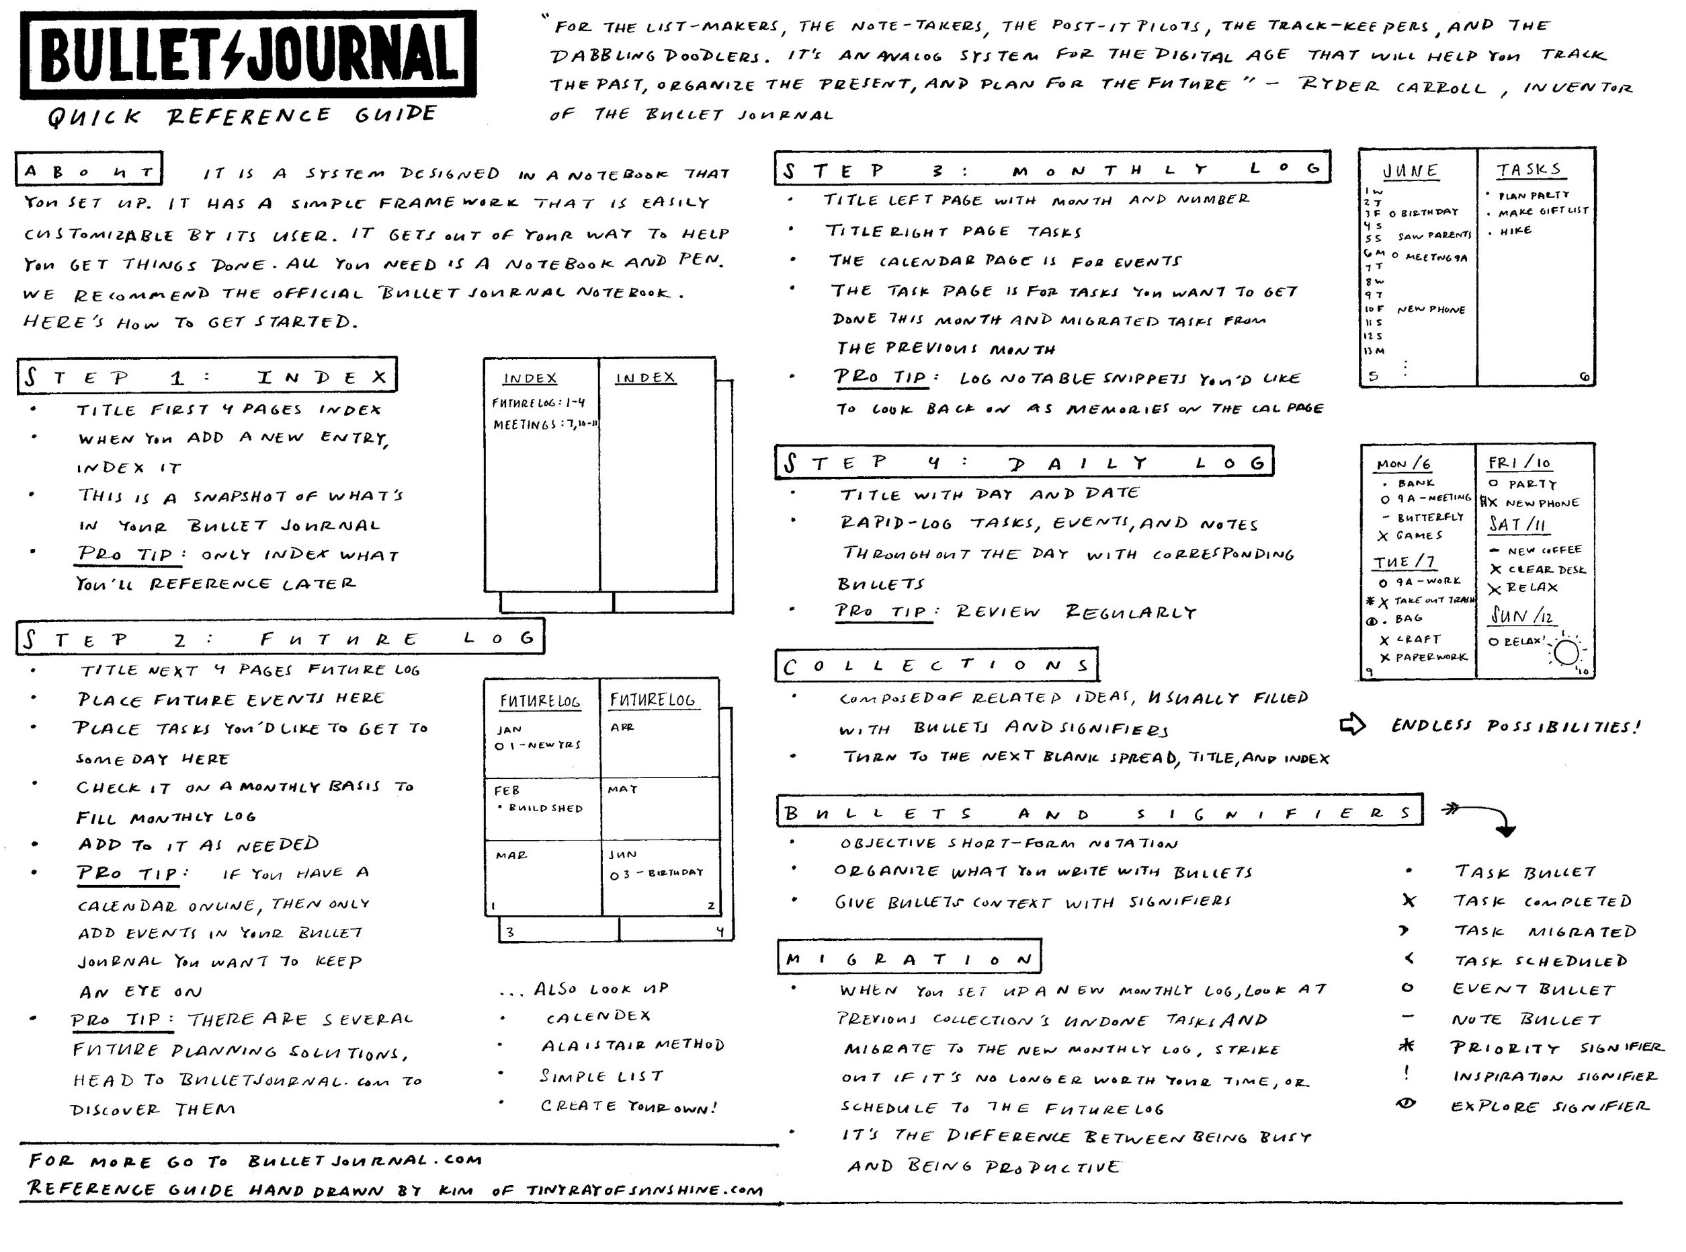 B ullet Journal Reference guide